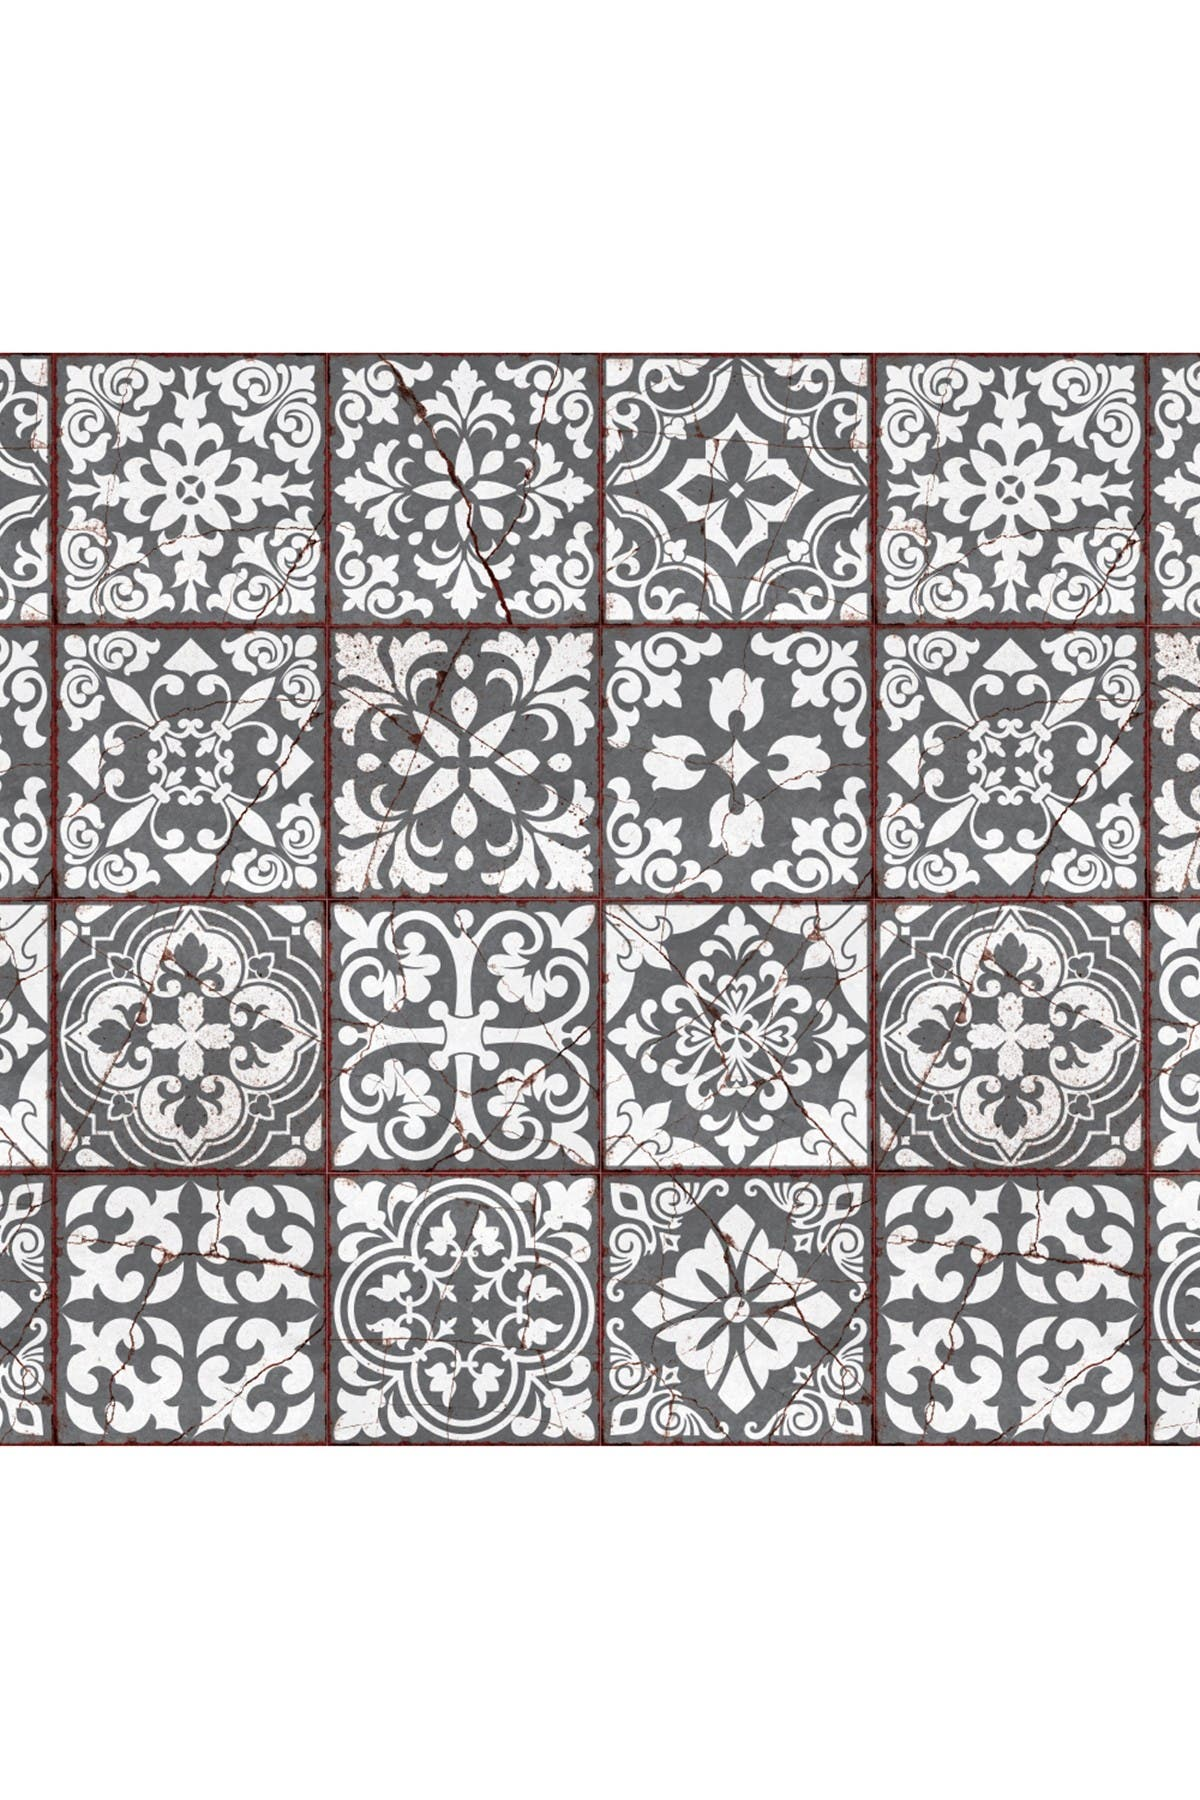 Image of WalPlus Vintage Cracked Design Medieval Tiles Wall Stickers - 6 x 6 inches - 24 pieces